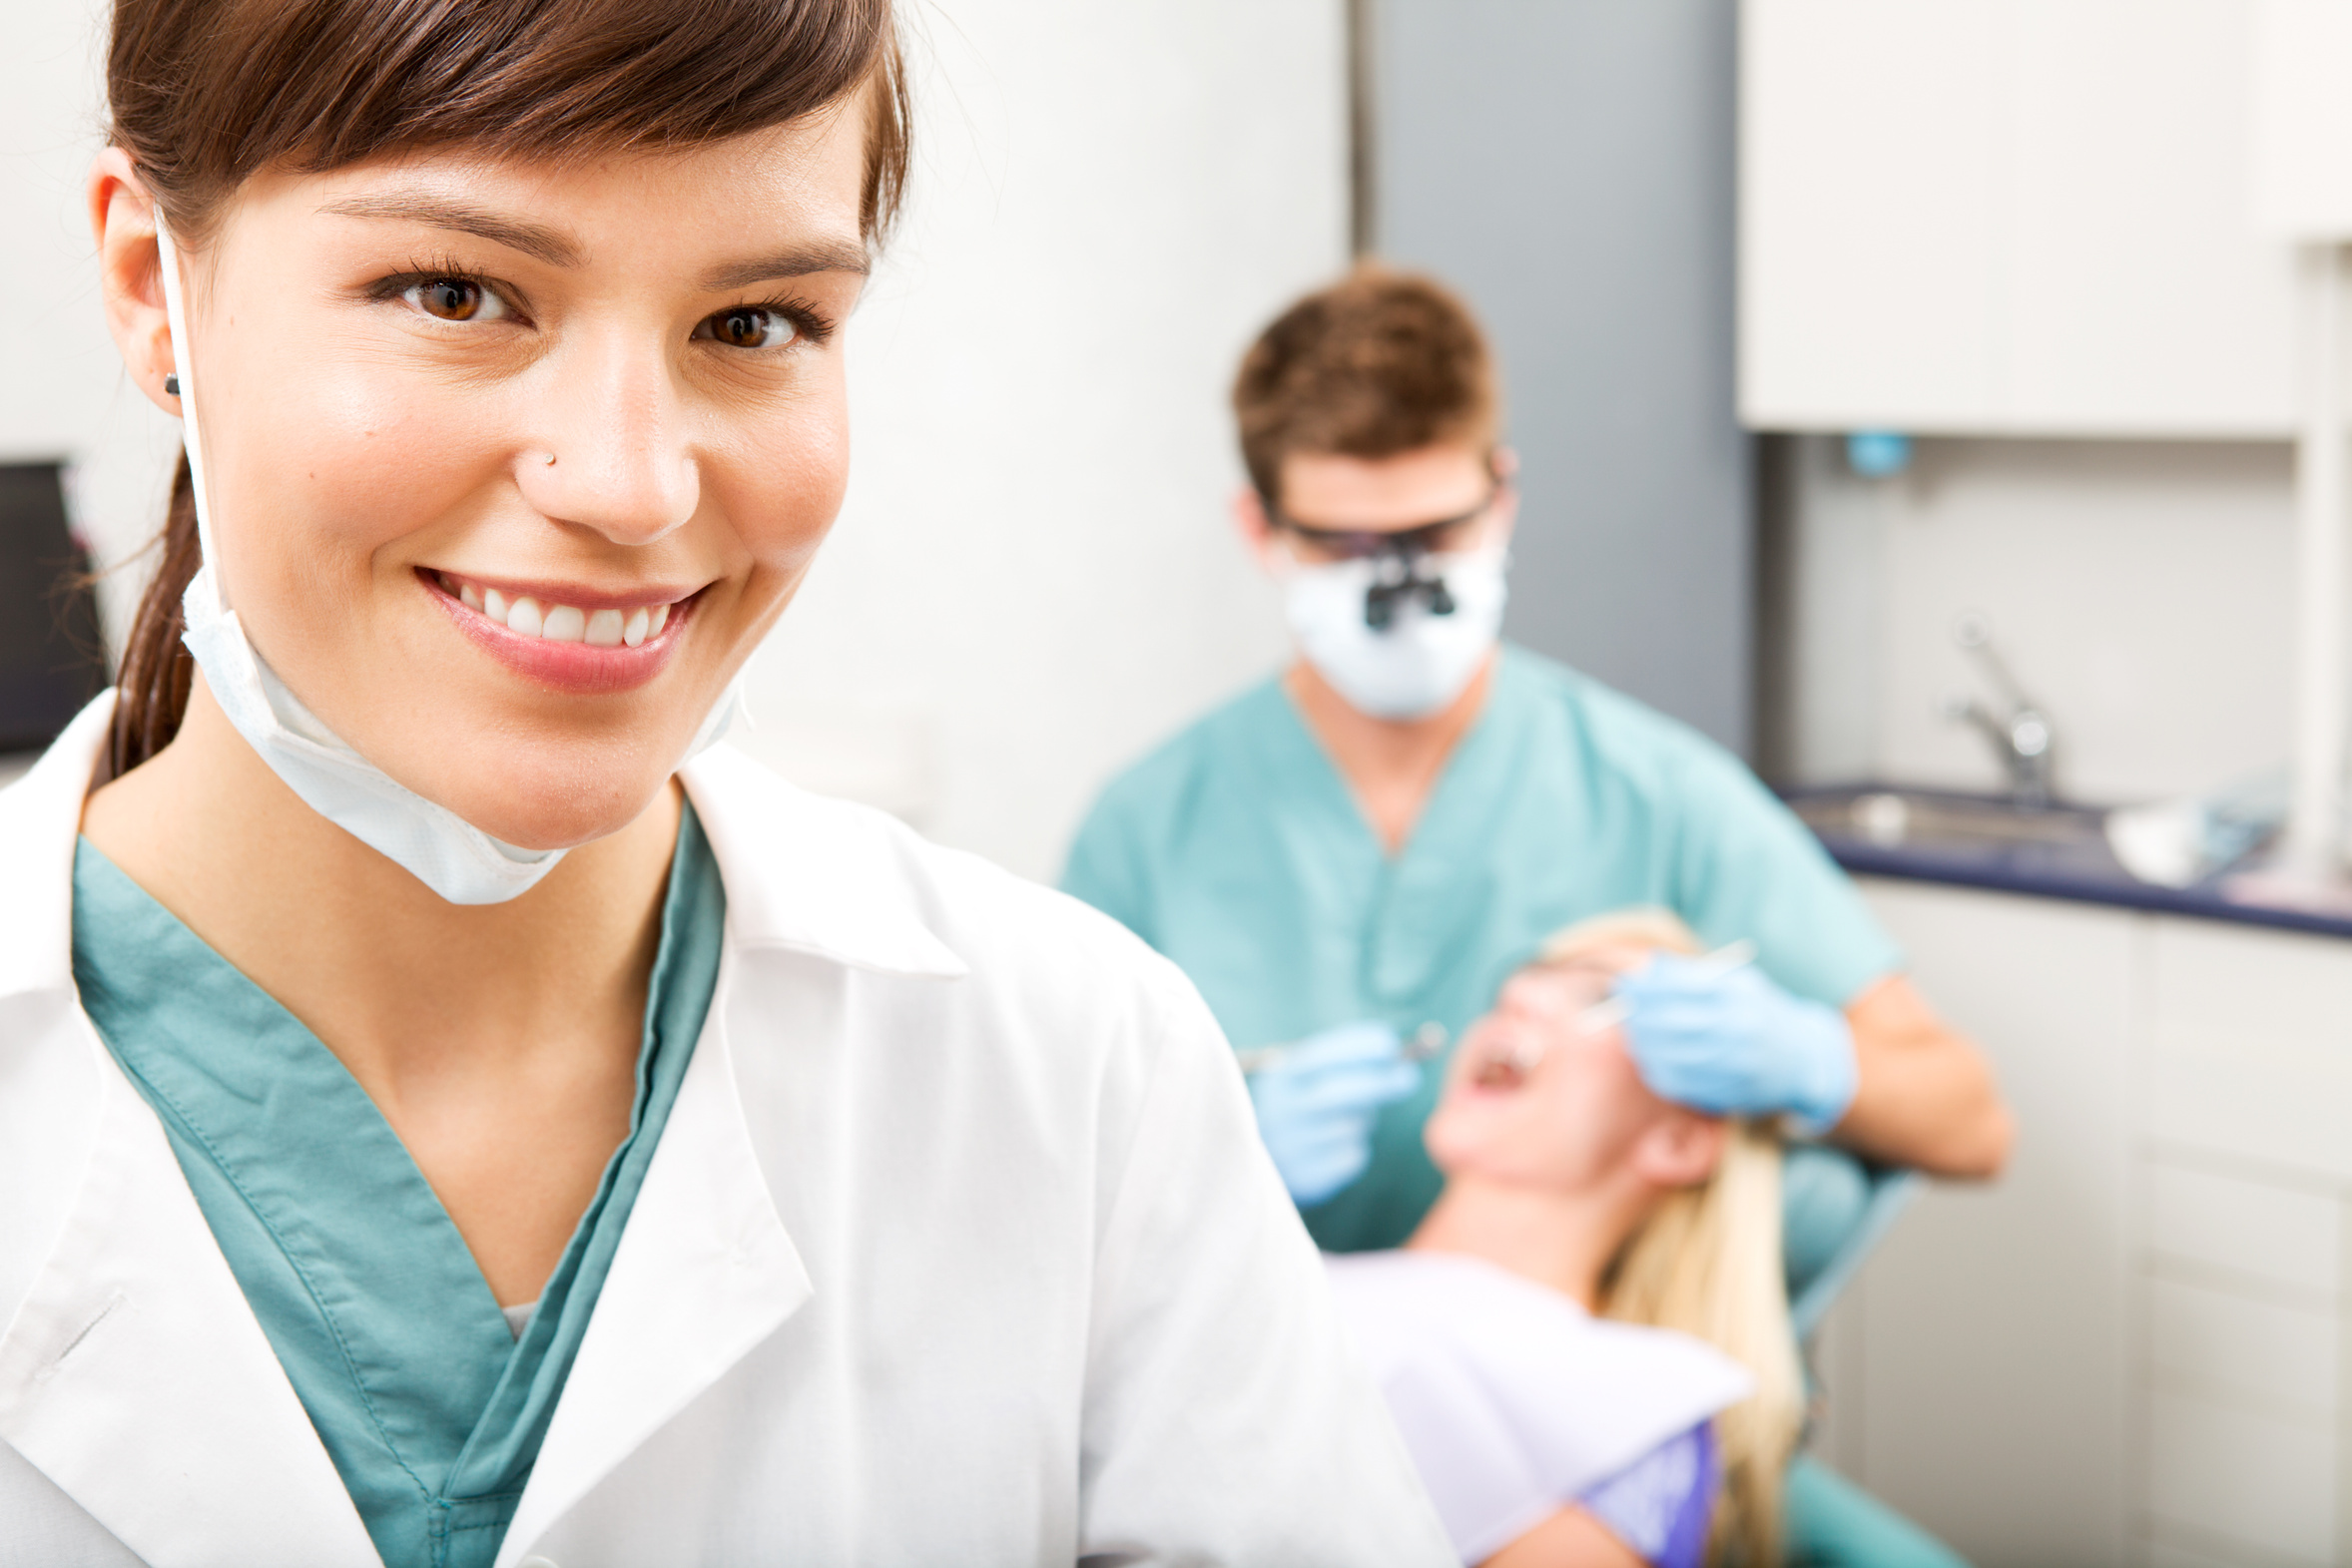 clinica dental fuengirola, dentistas fuengirola